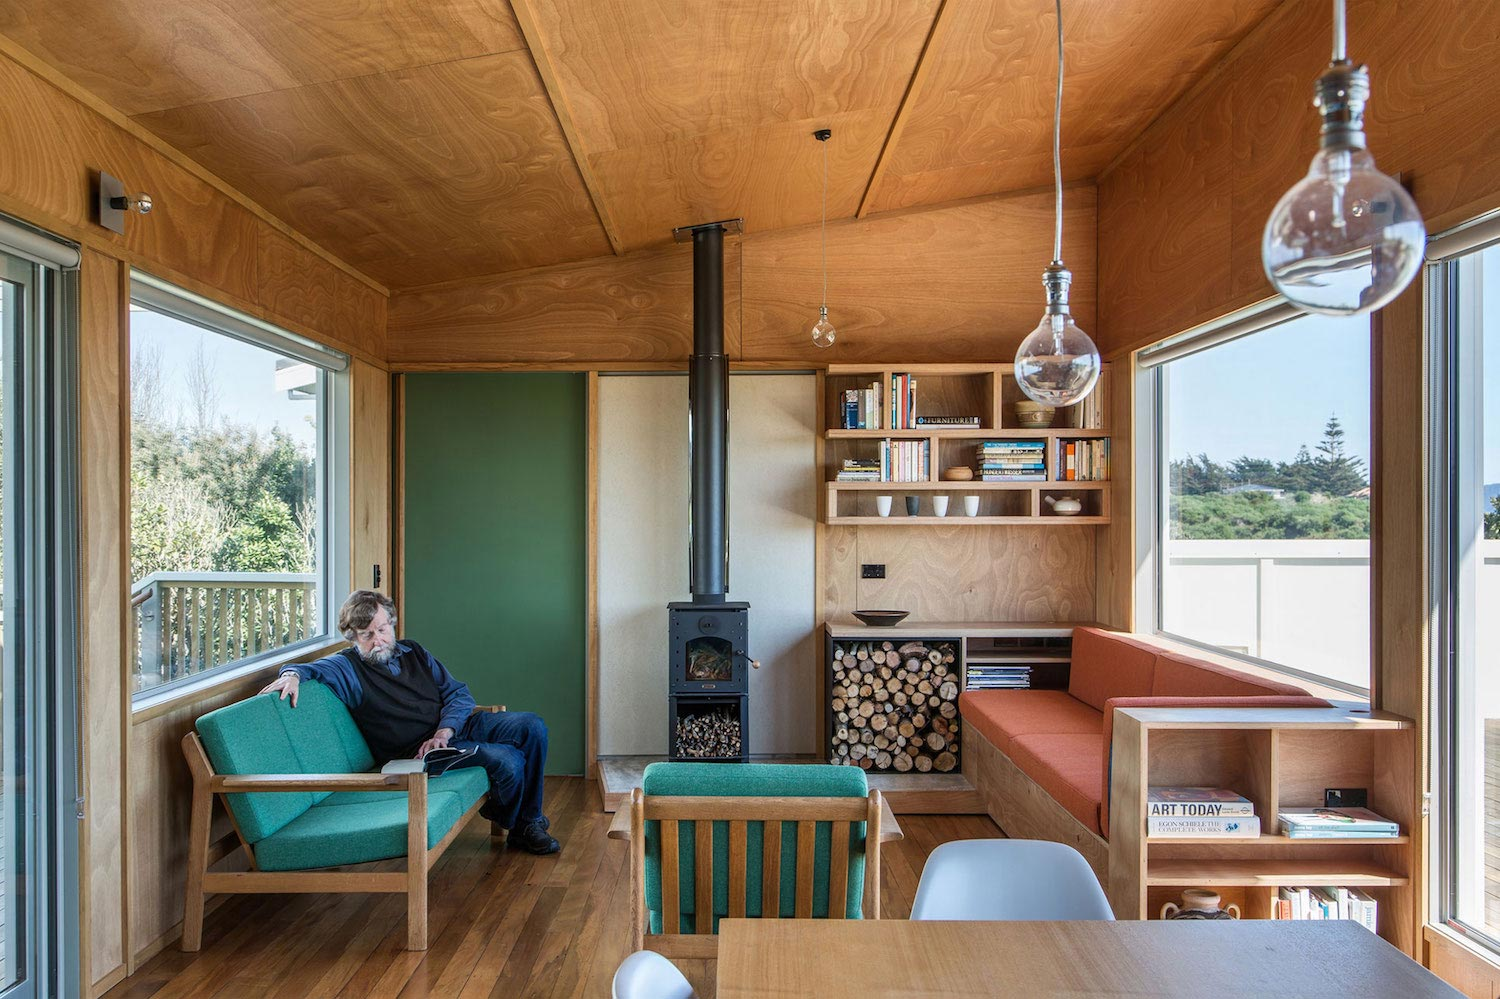 Renovation Field Way Bach House Waikanae New Zealand Designed Parsonson  Architects 07